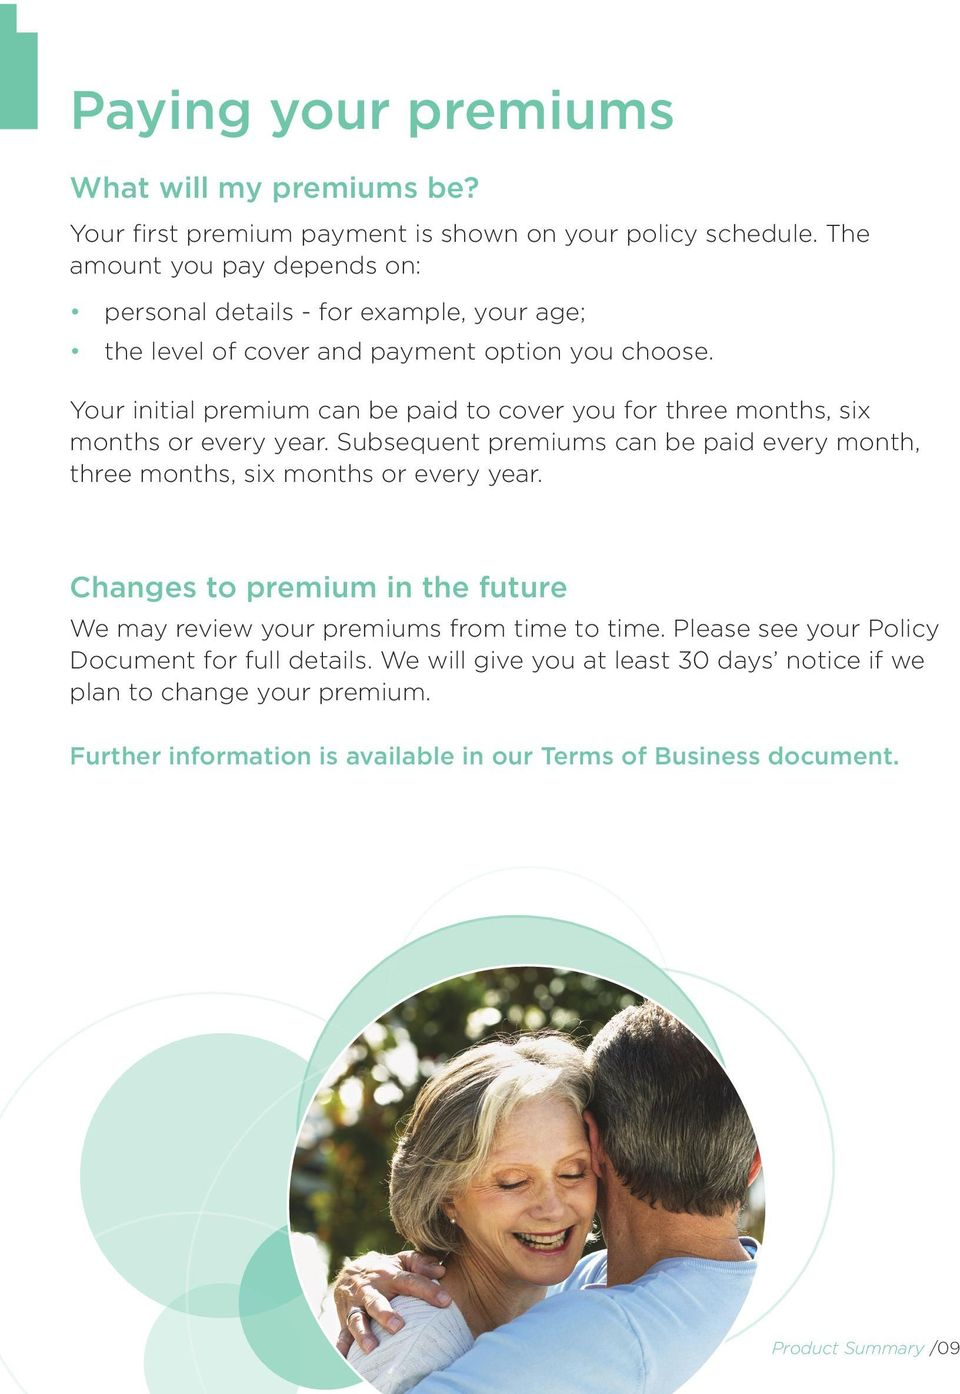 Your initial premium can be paid to cover you for three months, six months or every year. Subsequent premiums can be paid every month, three months, six months or every year.